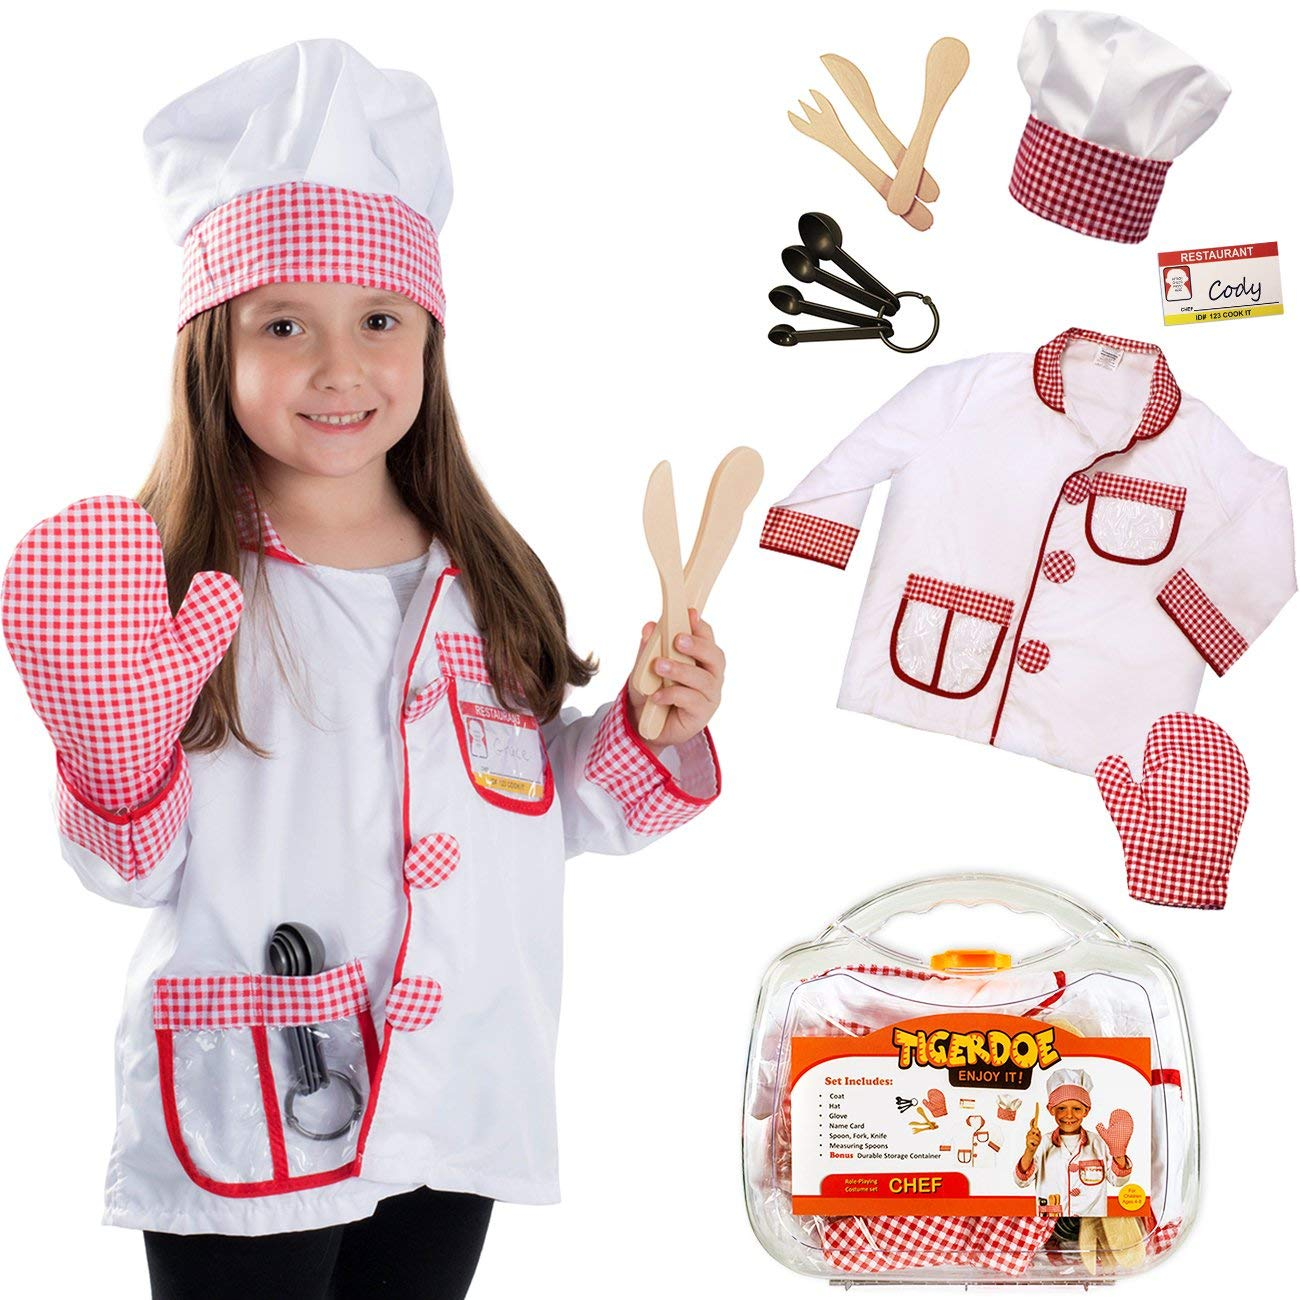 Kids Chef Role Play Costume Set Includes Apron Chef Hat for Little Girls Chef Set Toddler Dress up Pretend Play Kitchen Chef Costume Set-13pcs Baking Sets Great Gift/'s for 3 Year Olds Kids and Up